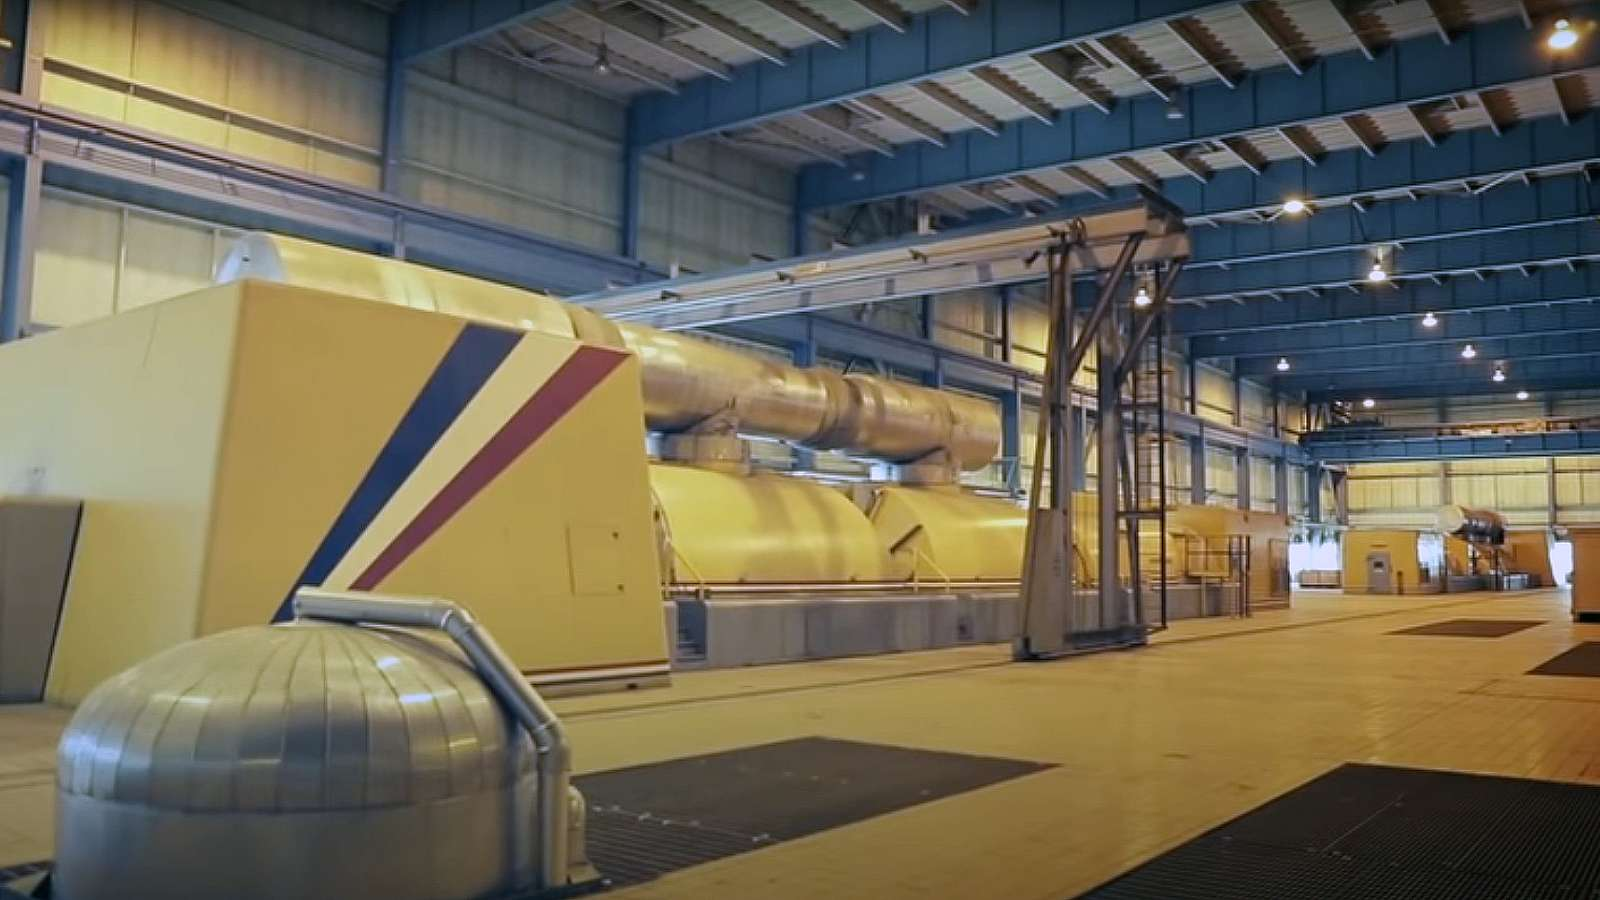 interior photo of a generator at Ghent Station